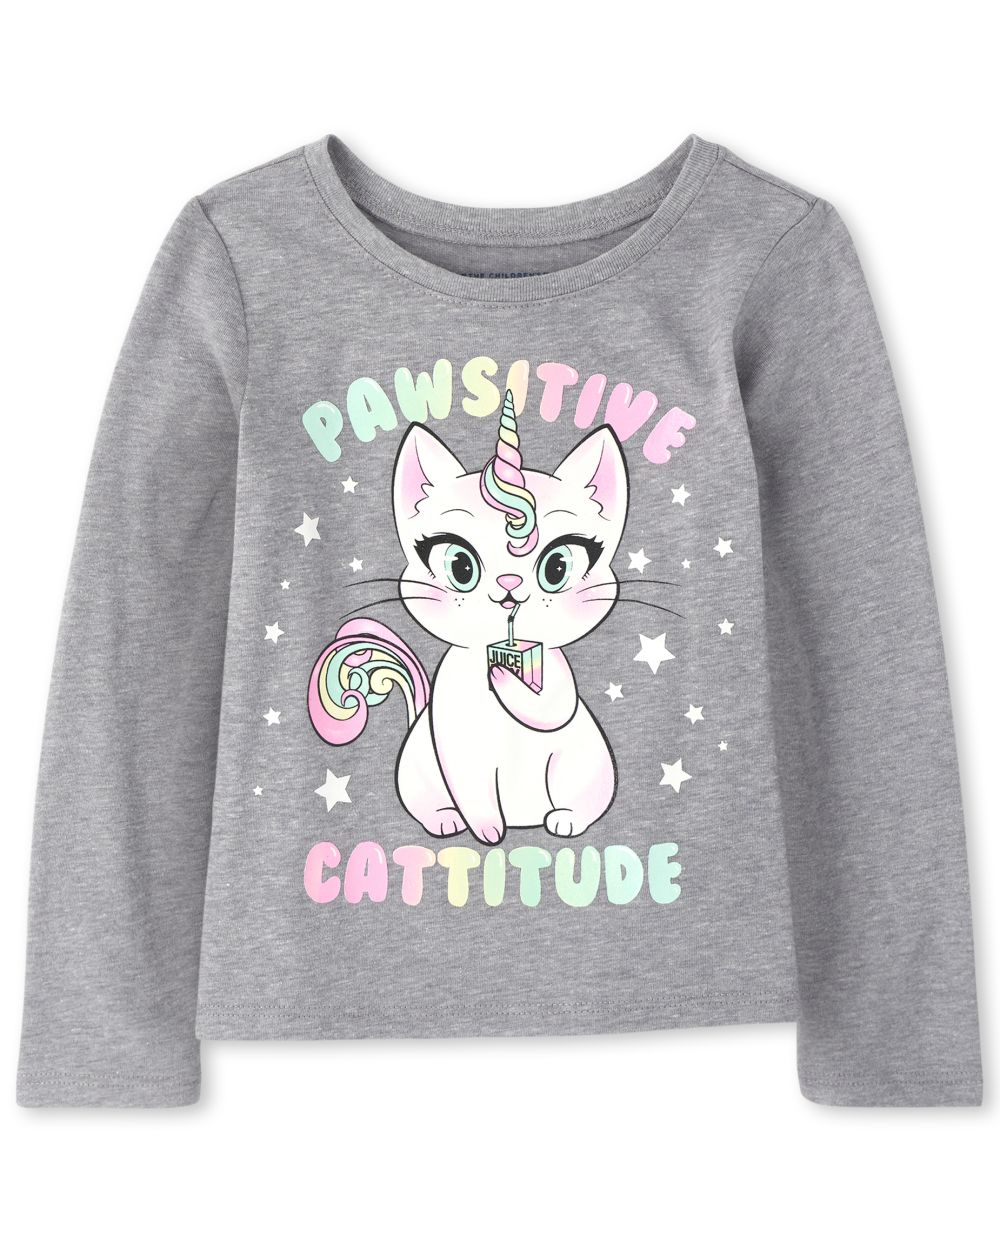 Baby And Toddler Girls Caticorn Graphic Tee